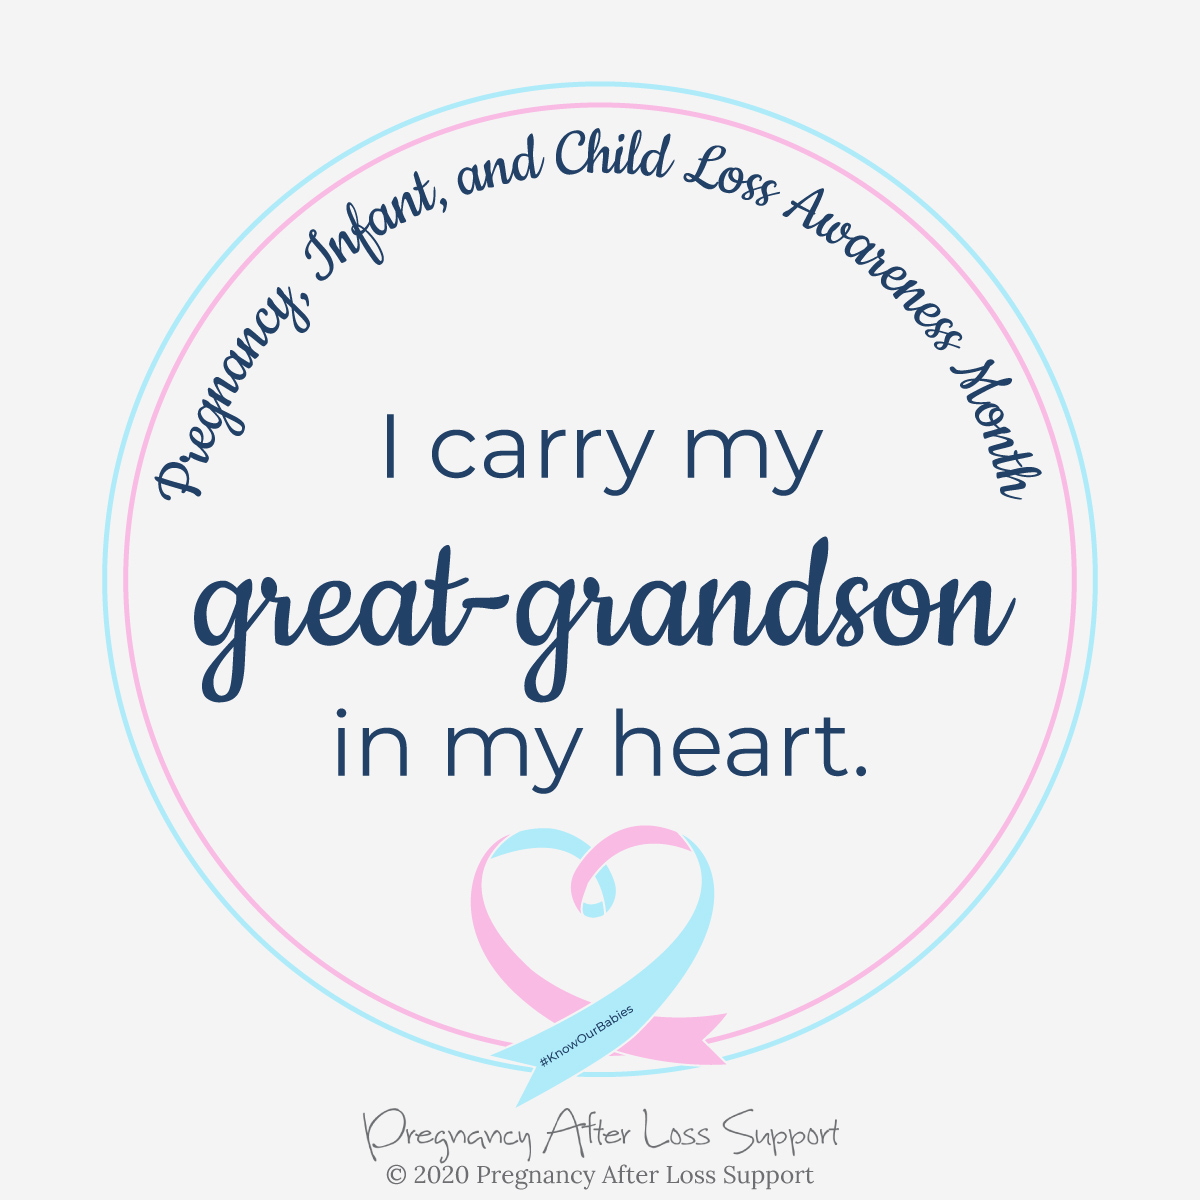 I carry my great-grandson in my heart - Pregnancy, Infant, and Child Loss Awareness Month